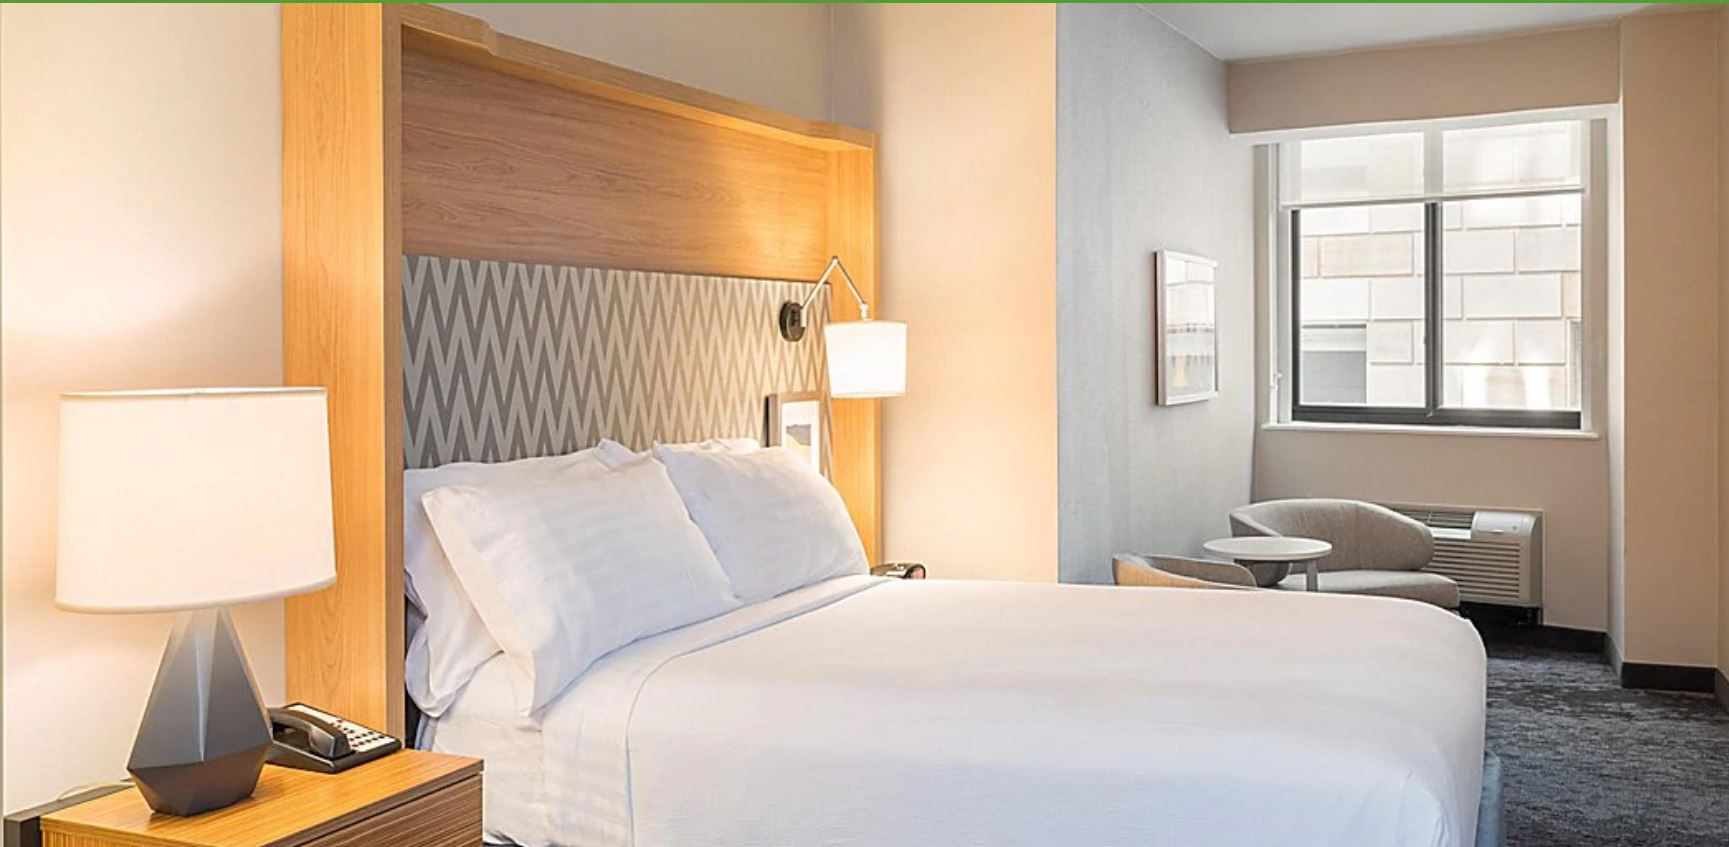 https://www.hotelsbyday.com/_data/default-hotel_image/2/12817/holiday-inn-manhattan.jpg